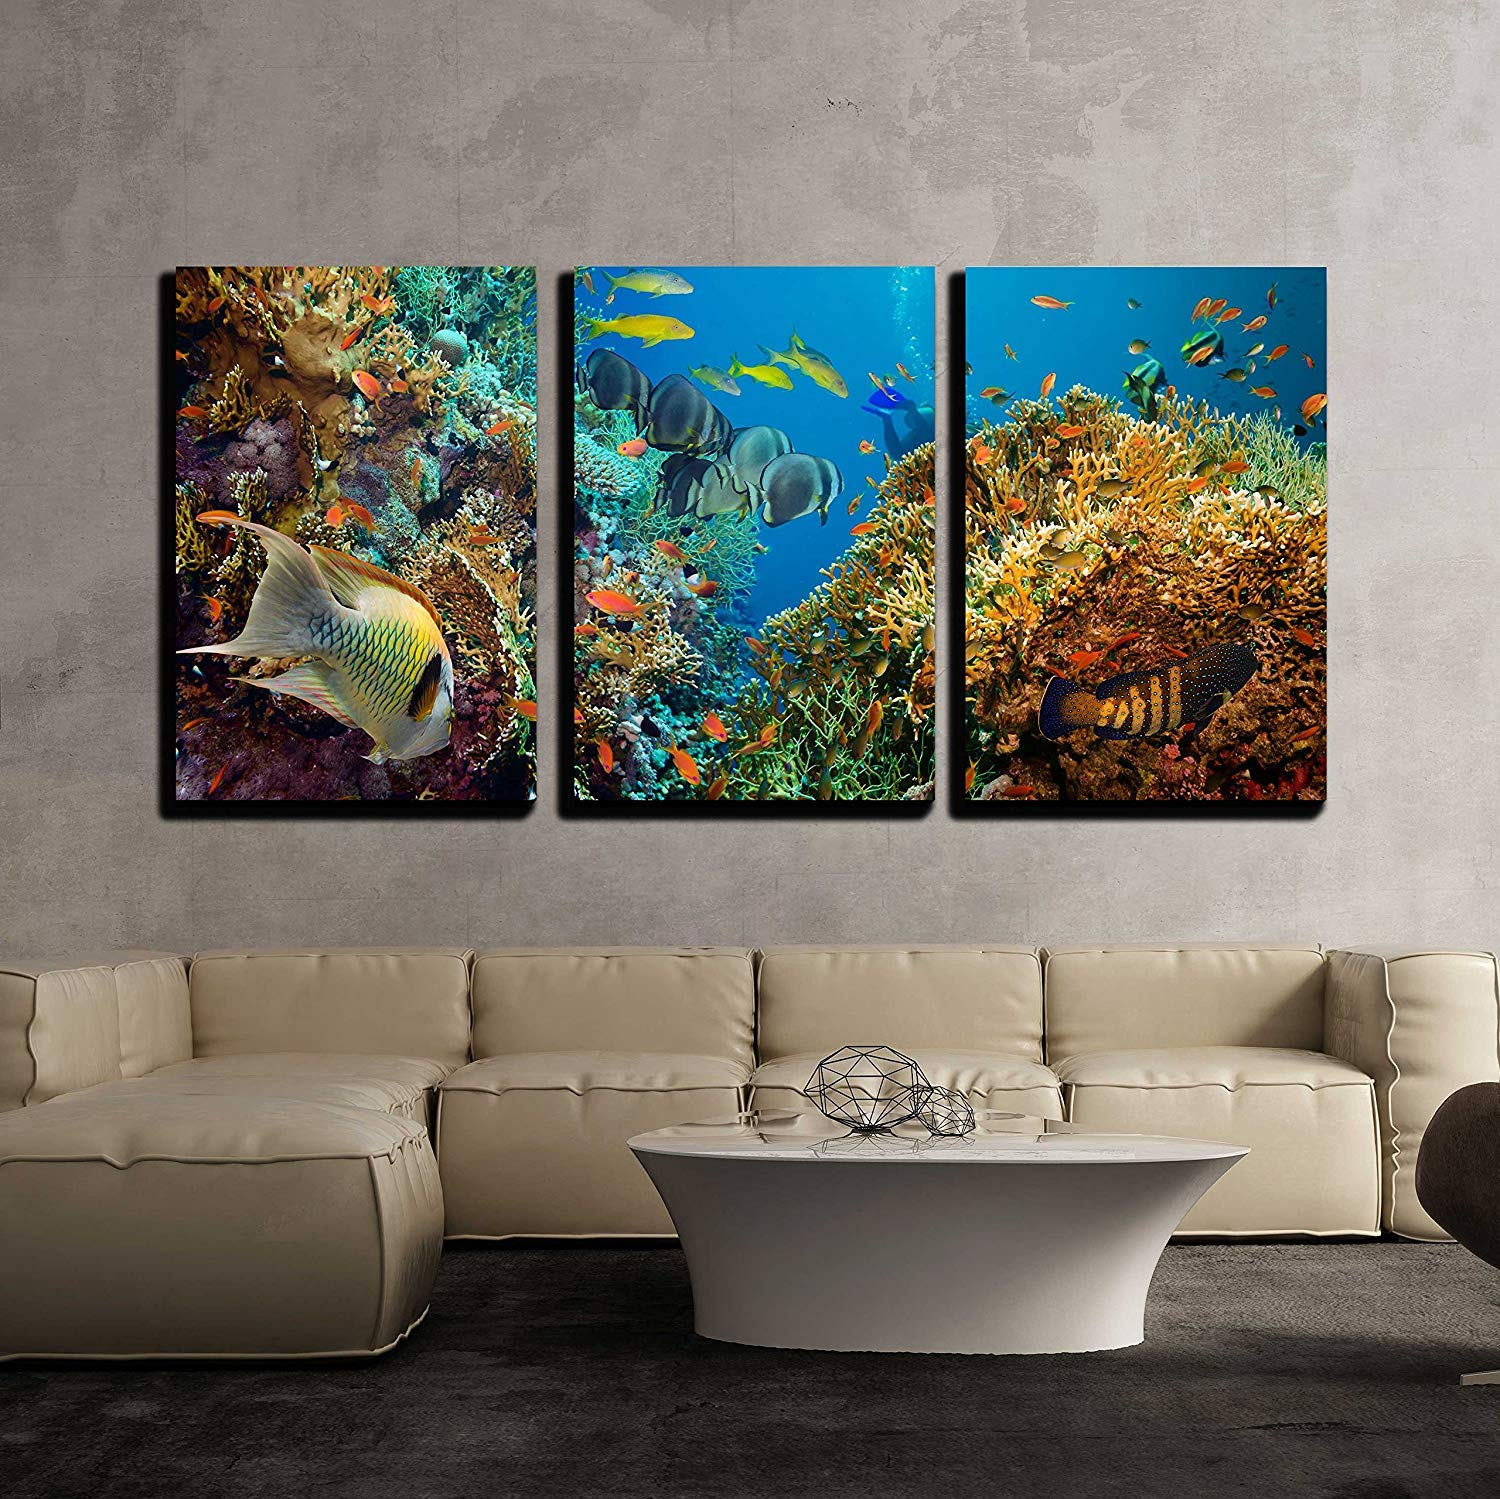 3 panel canvas wall art paintings tropical anthias fish with net fire corals on red sea reef underwater modern home decor stretched and framed ready to